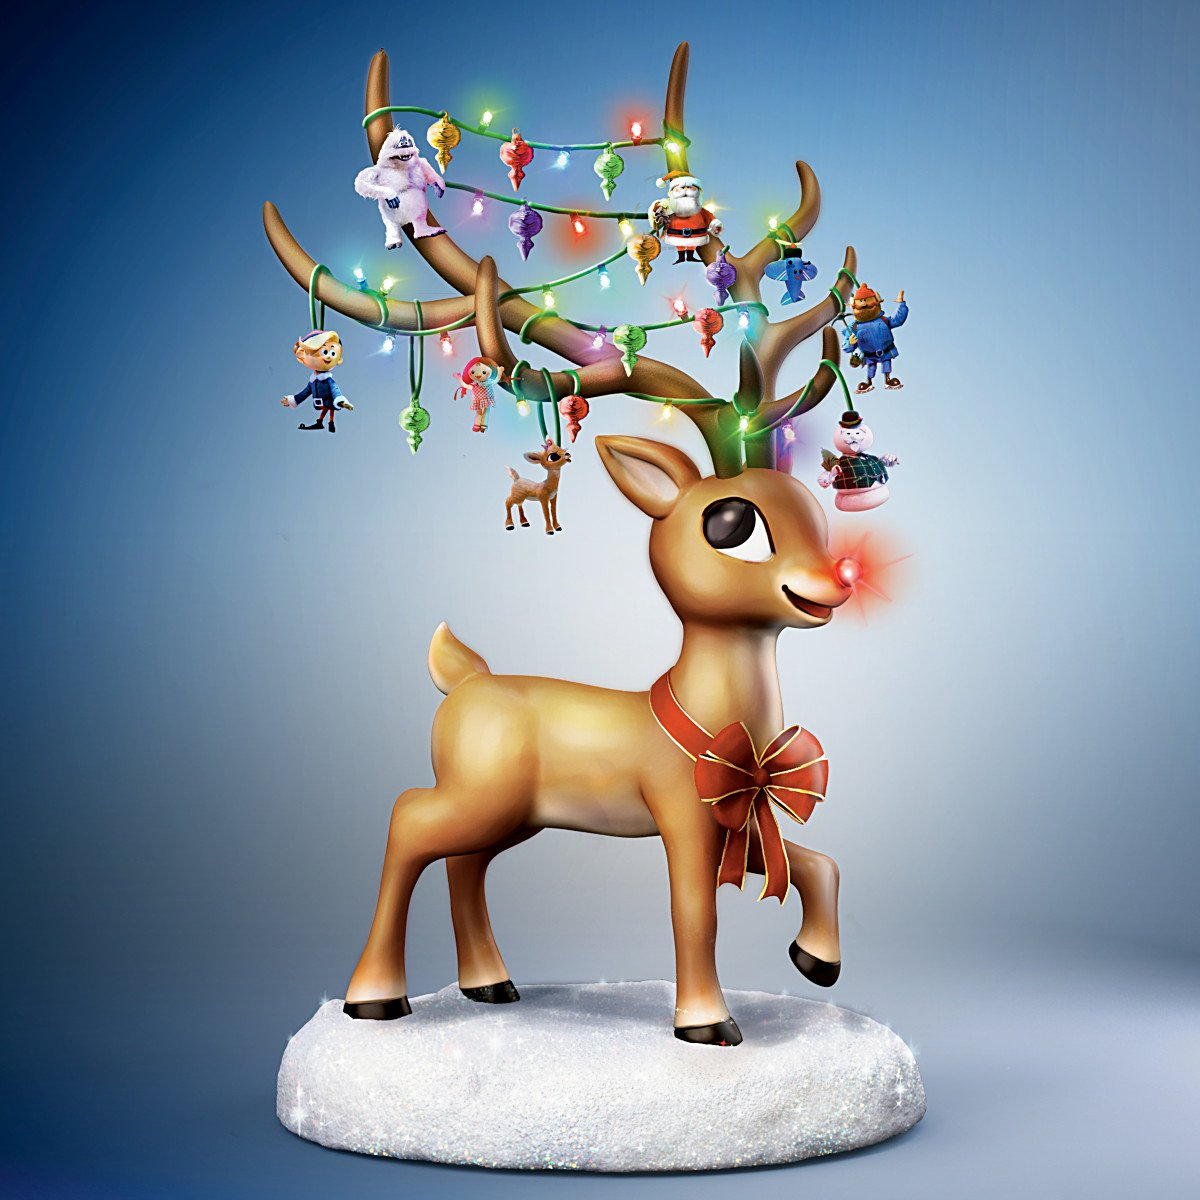 Amazon.com: Rudolph the Red Nosed Reindeer Illuminated Musical ...